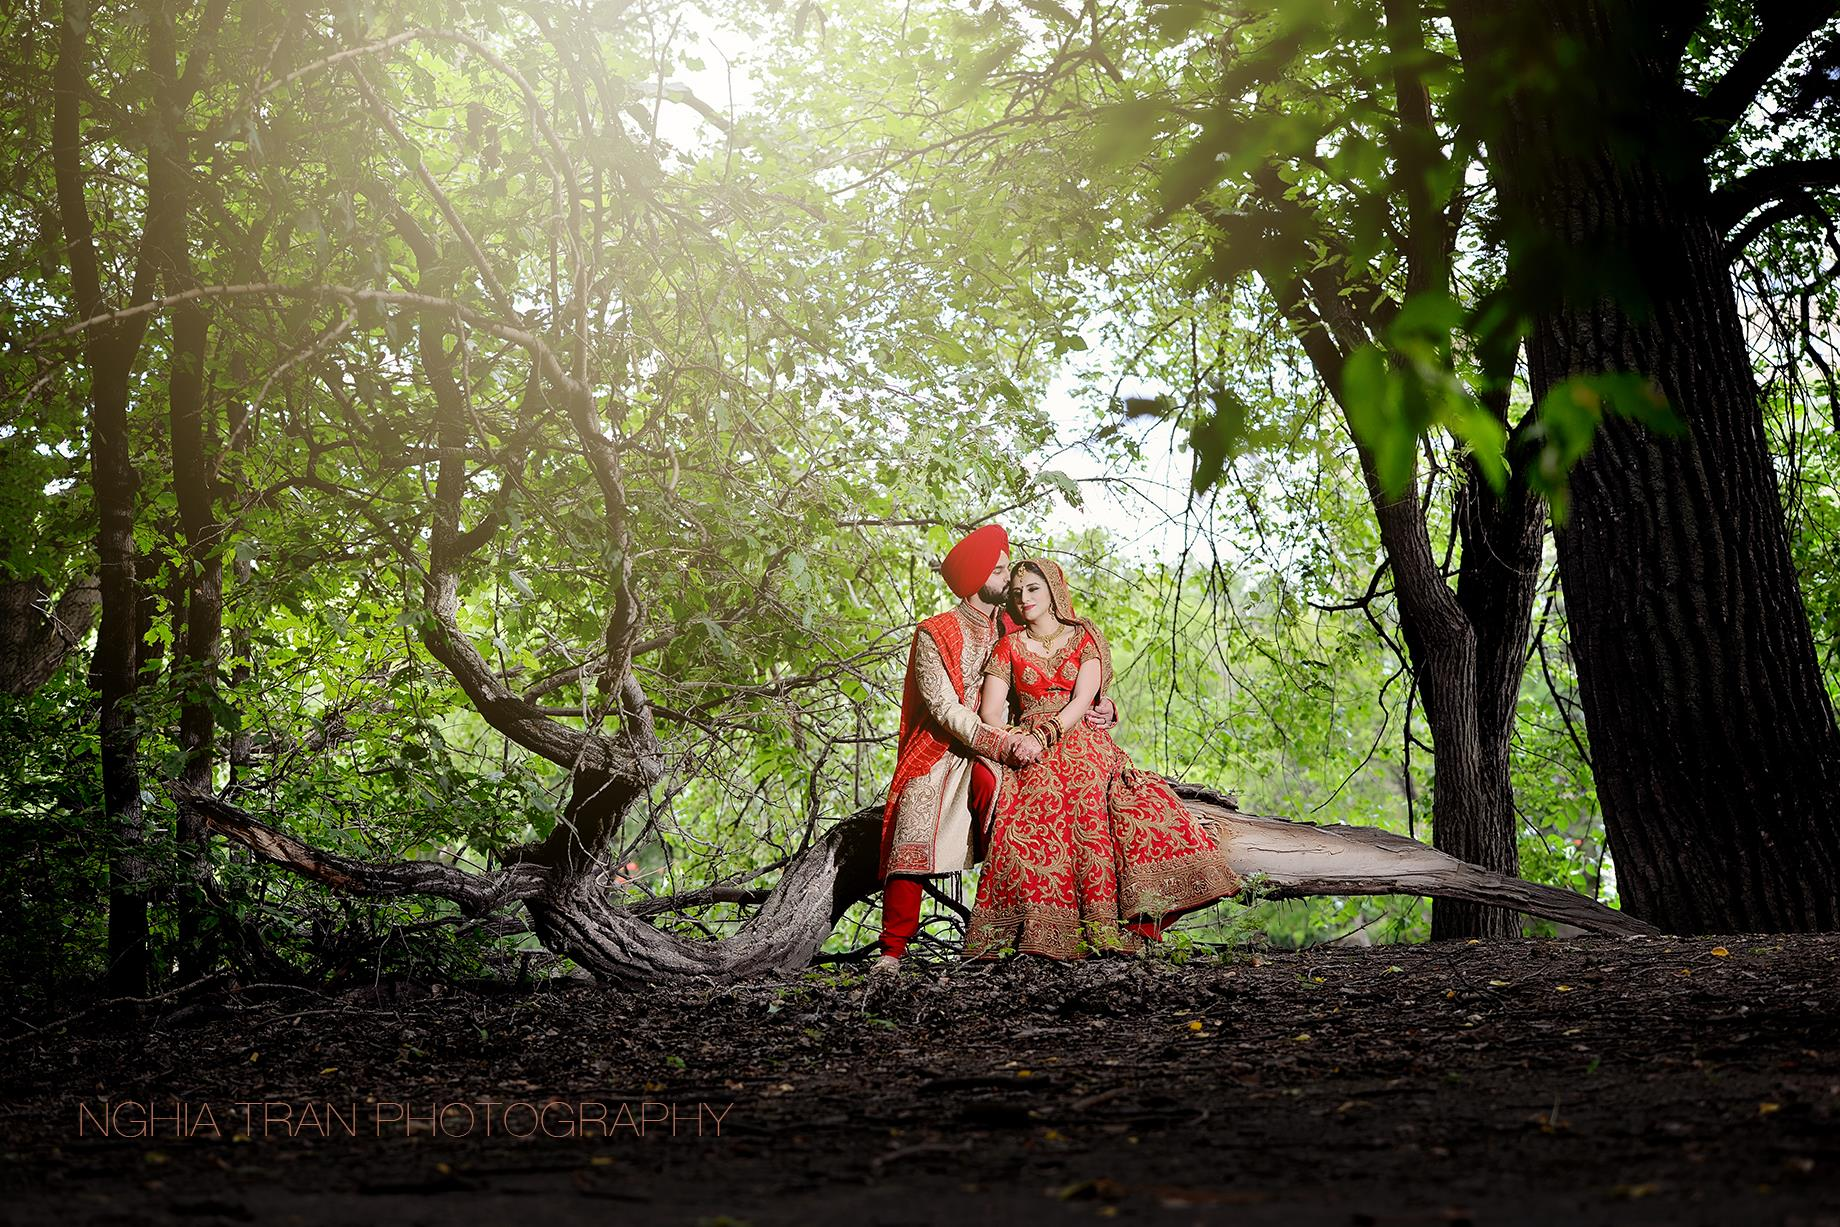 MAHARANI WEDDINGS - SIKH BRIDE     Sikh Bride - Jyoti    Photoraphy: Nghia Tran Photography, Hair: Krystle DeLeon, Makeup: Makeup Expressions, Mehendi: Hasina Mehendi & Body Art  Videography: Michael J. Scott Productions